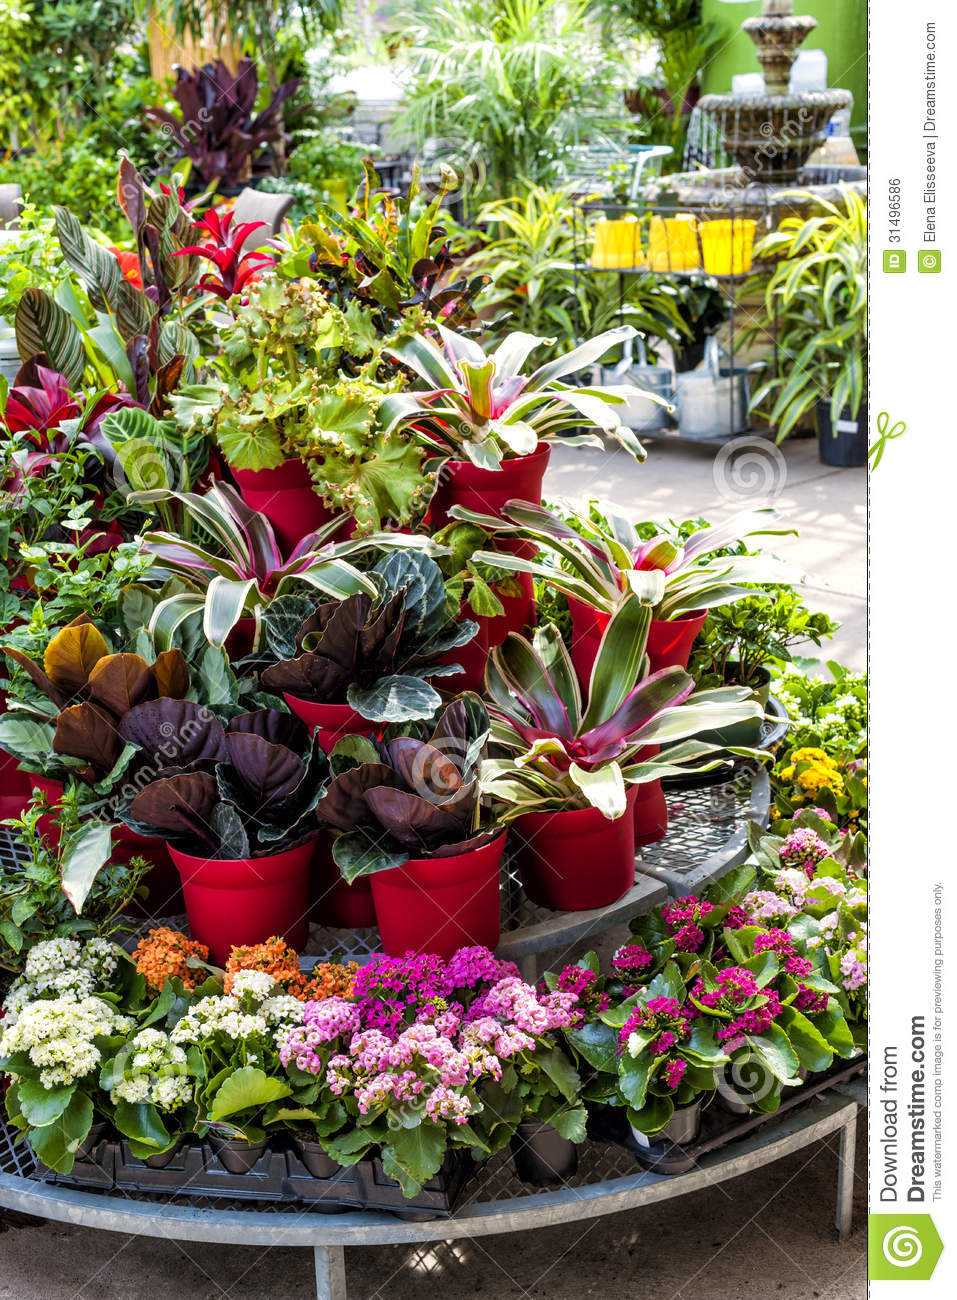 plants for sale in nursery stock photo. image of assorted - 31496586